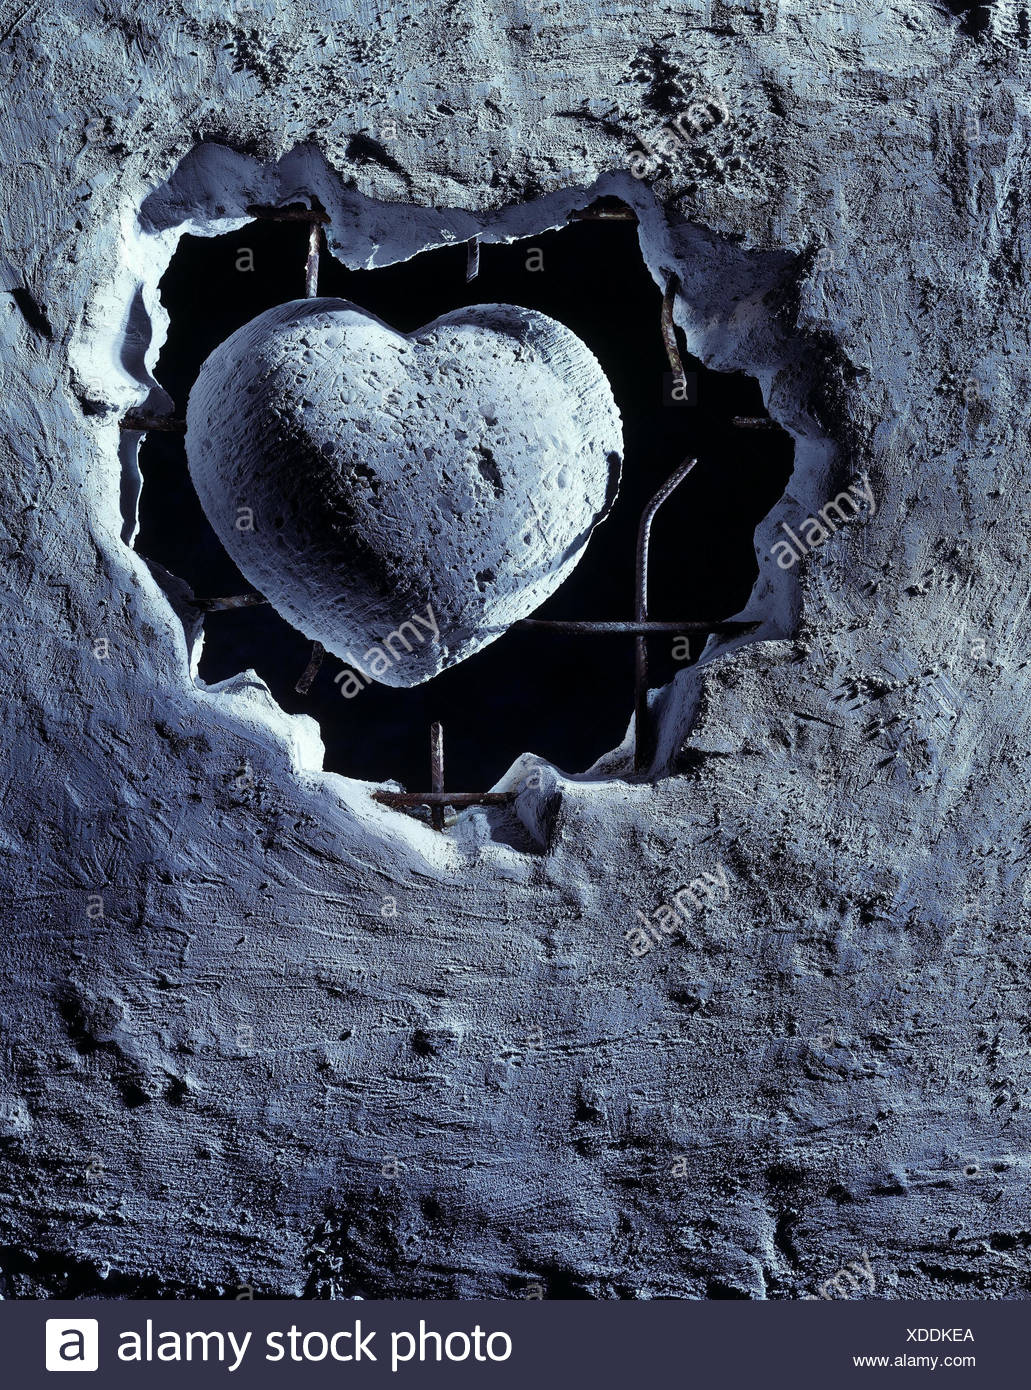 Stone defensive wall, detail, bars, heart, trapped, [M], 'heart from stone', cold-hearted, heartlessly, indifferently, insensitivity - Stock Image